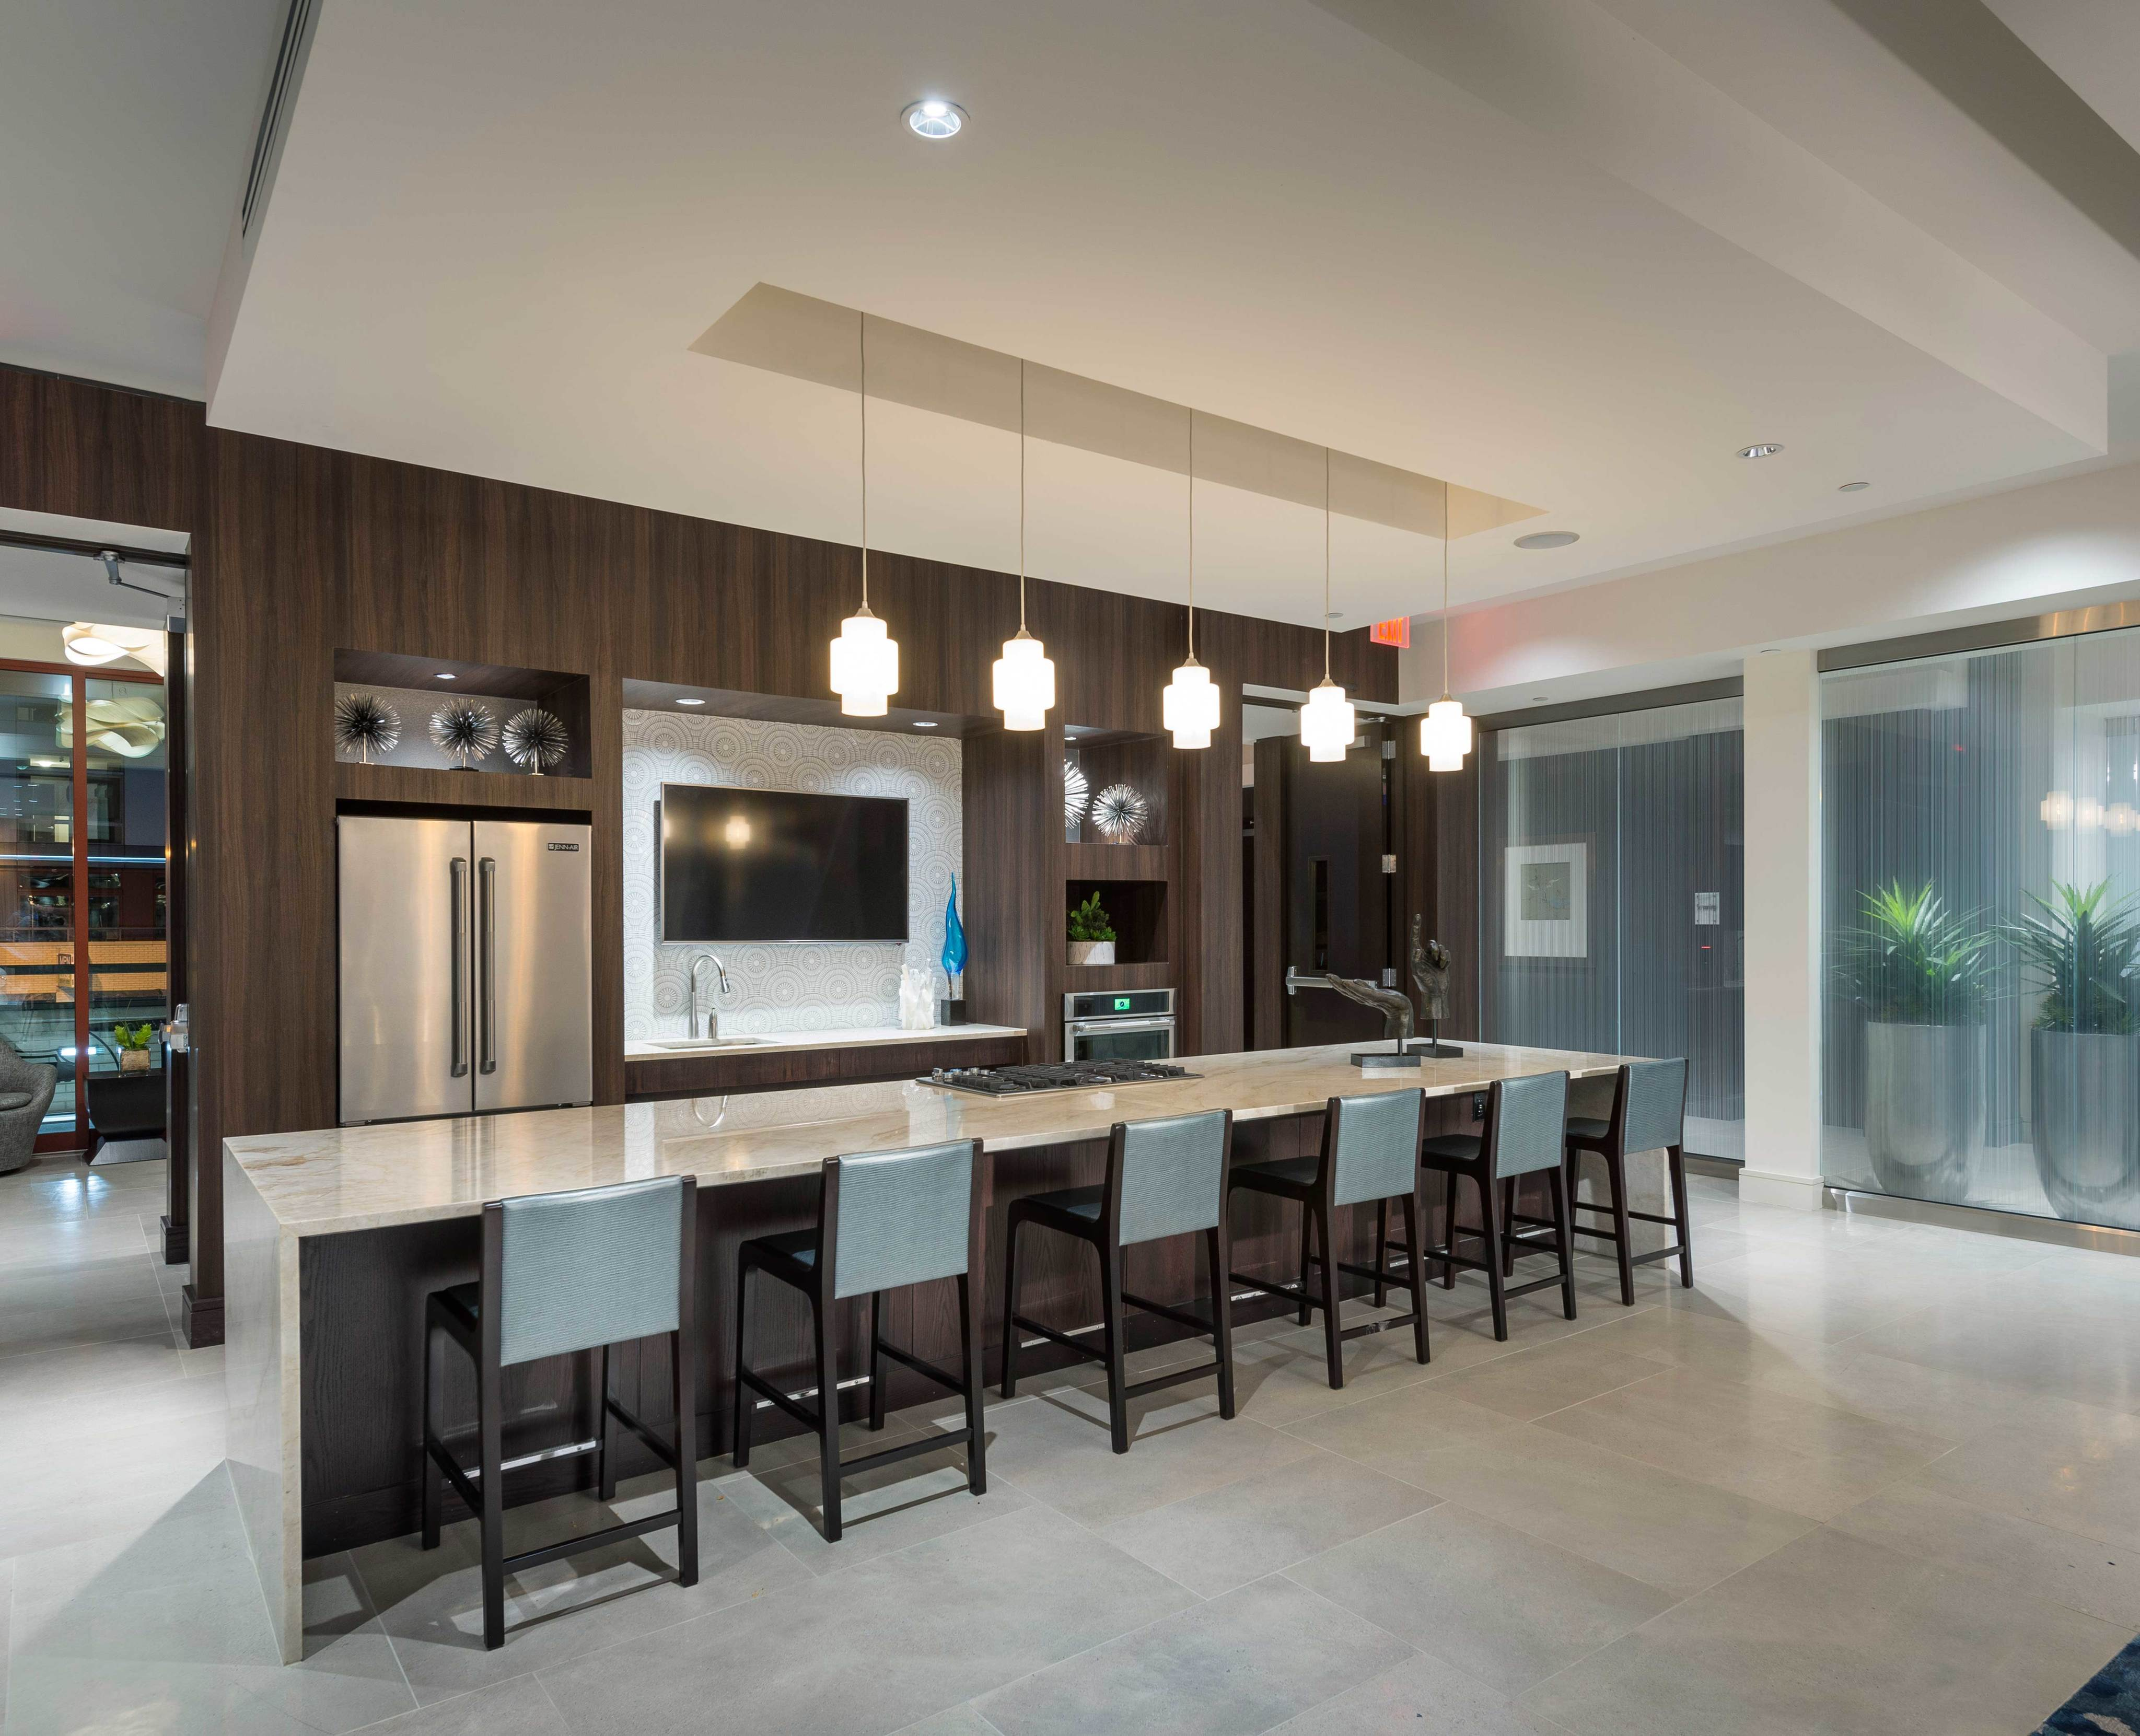 Resident Pantry and breakfast bar area at Hanover North Broad